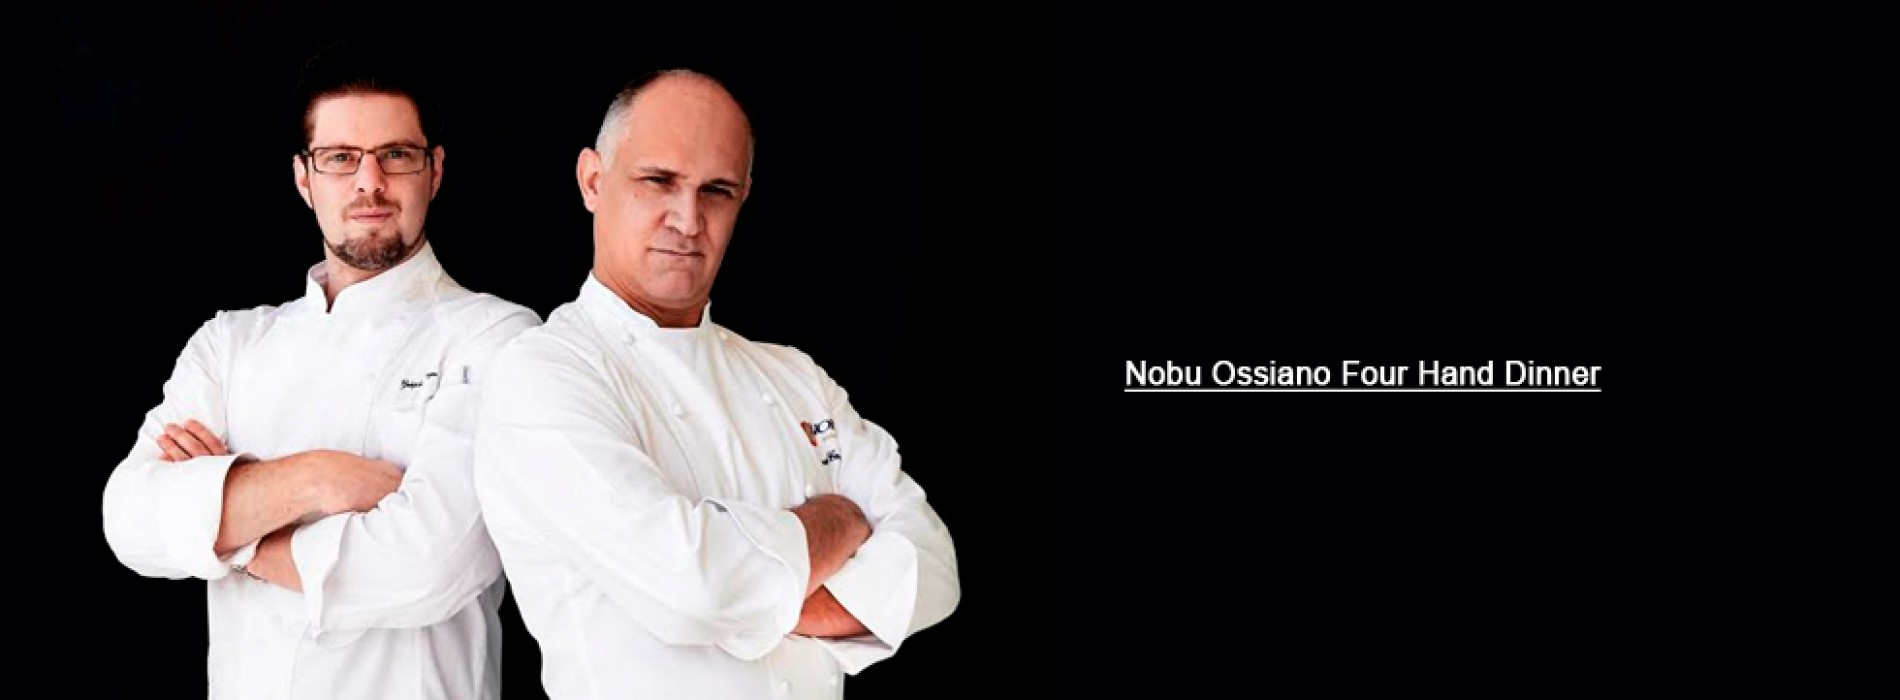 Ossiano joins forces with Nobu for an exclusive 'Four Hands' Dining Experience at Atlantis, The Palm